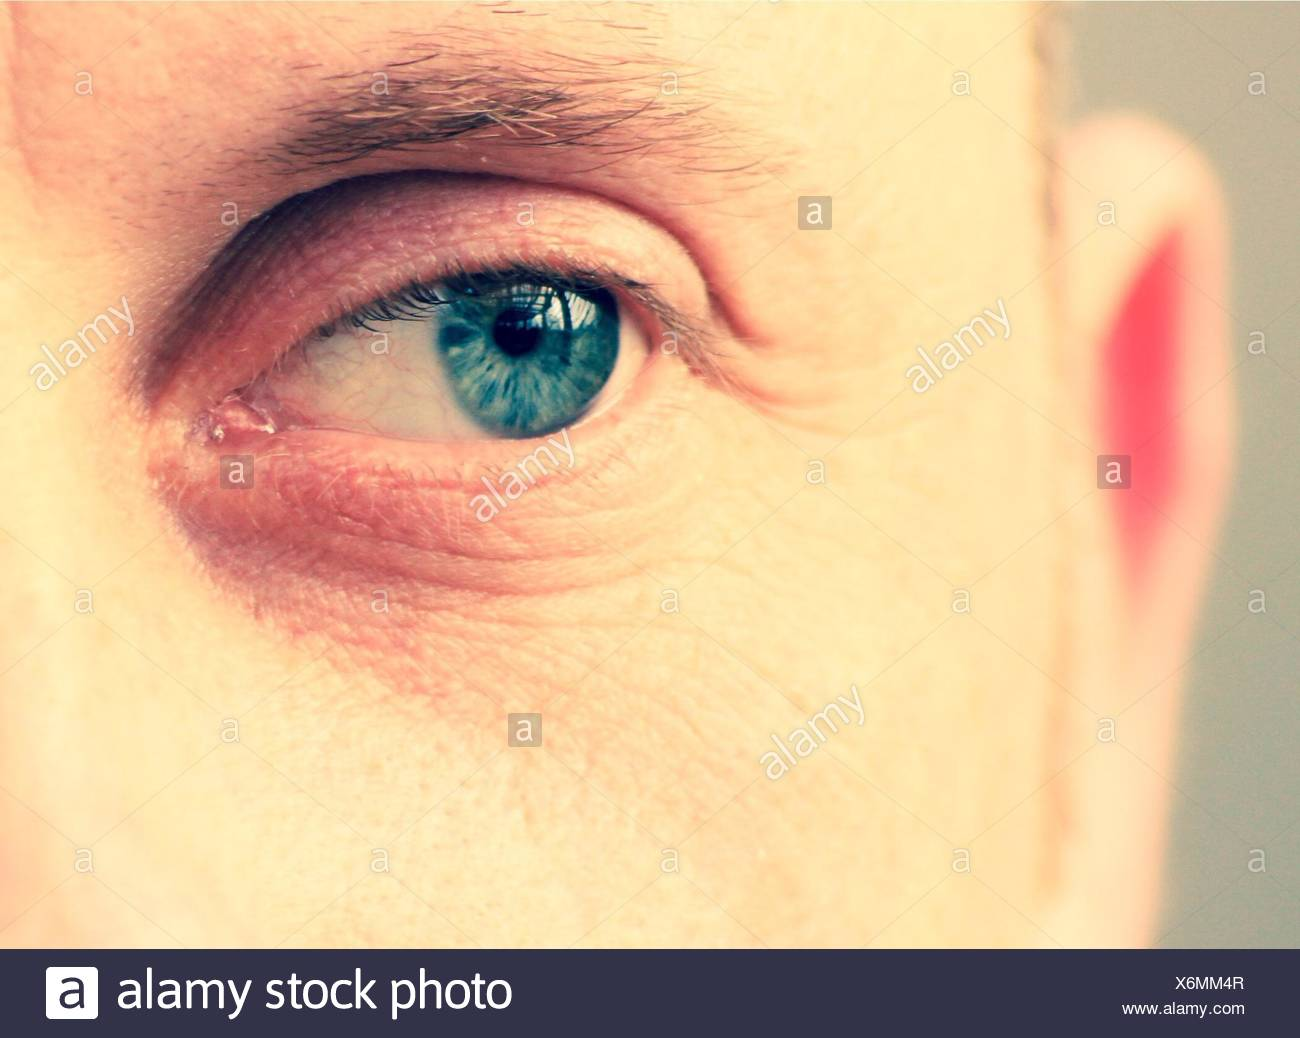 Extreme Close Up of Eye mâle Photo Stock